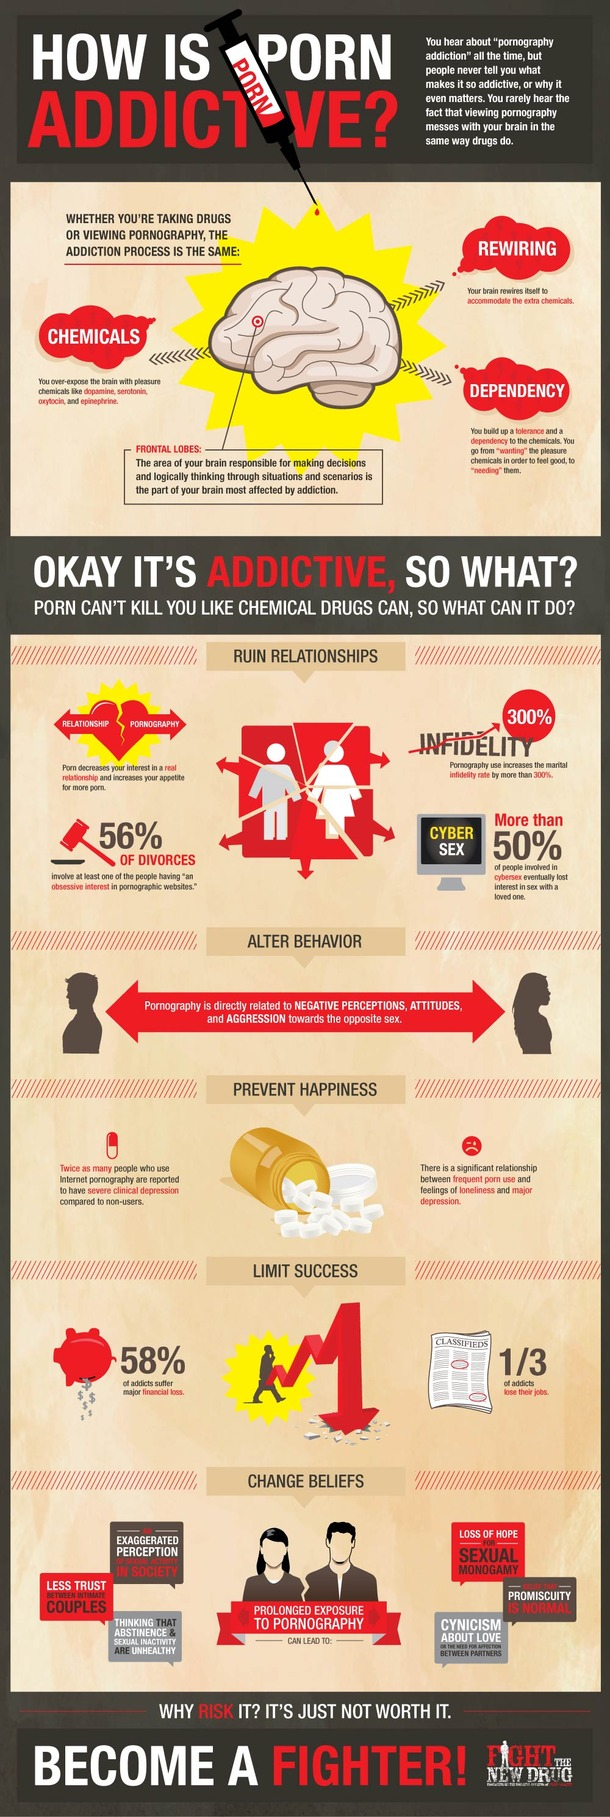 FTND-Infographic-How is porn addictive?